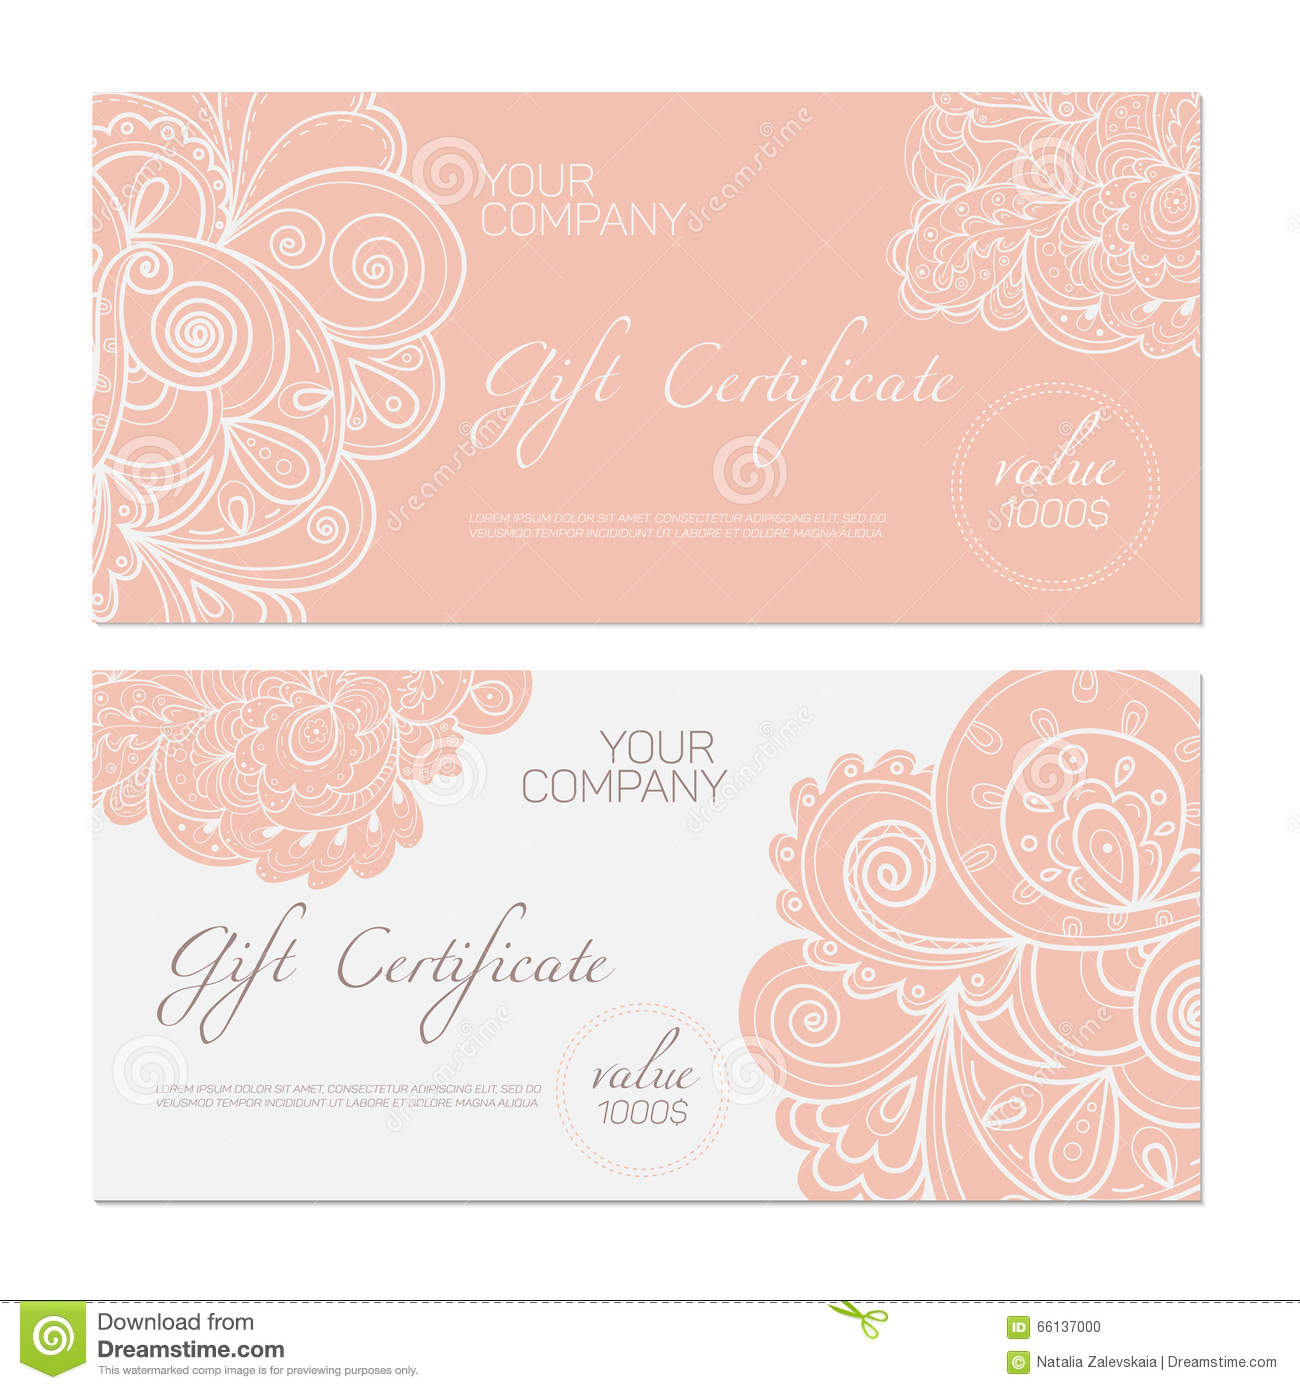 Gift certificate pink stock vector. Image of coupon ...